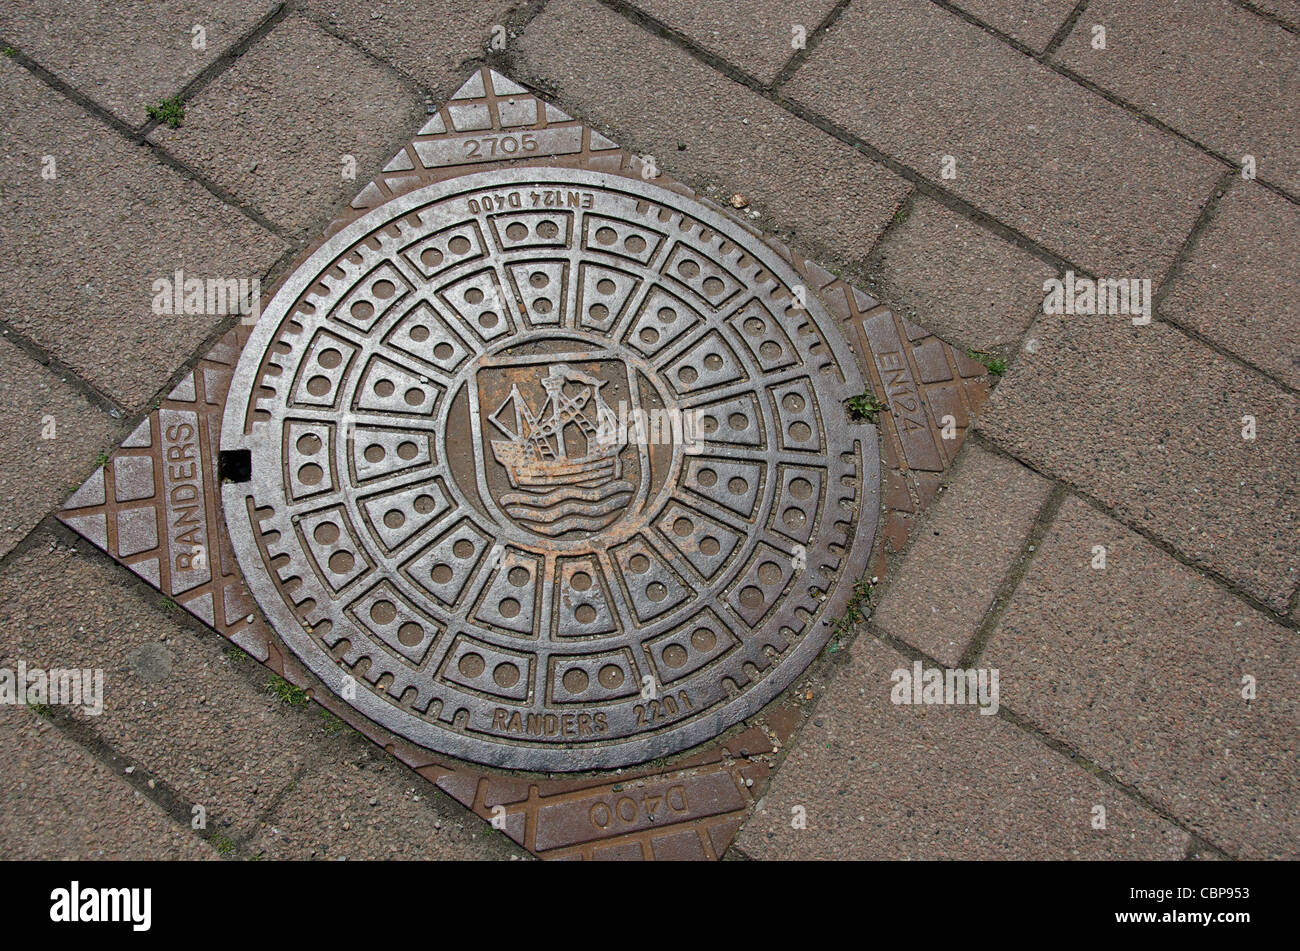 Denmark, Helsingoer. Downtown manhole cover with traditional ship crest design. - Stock Image